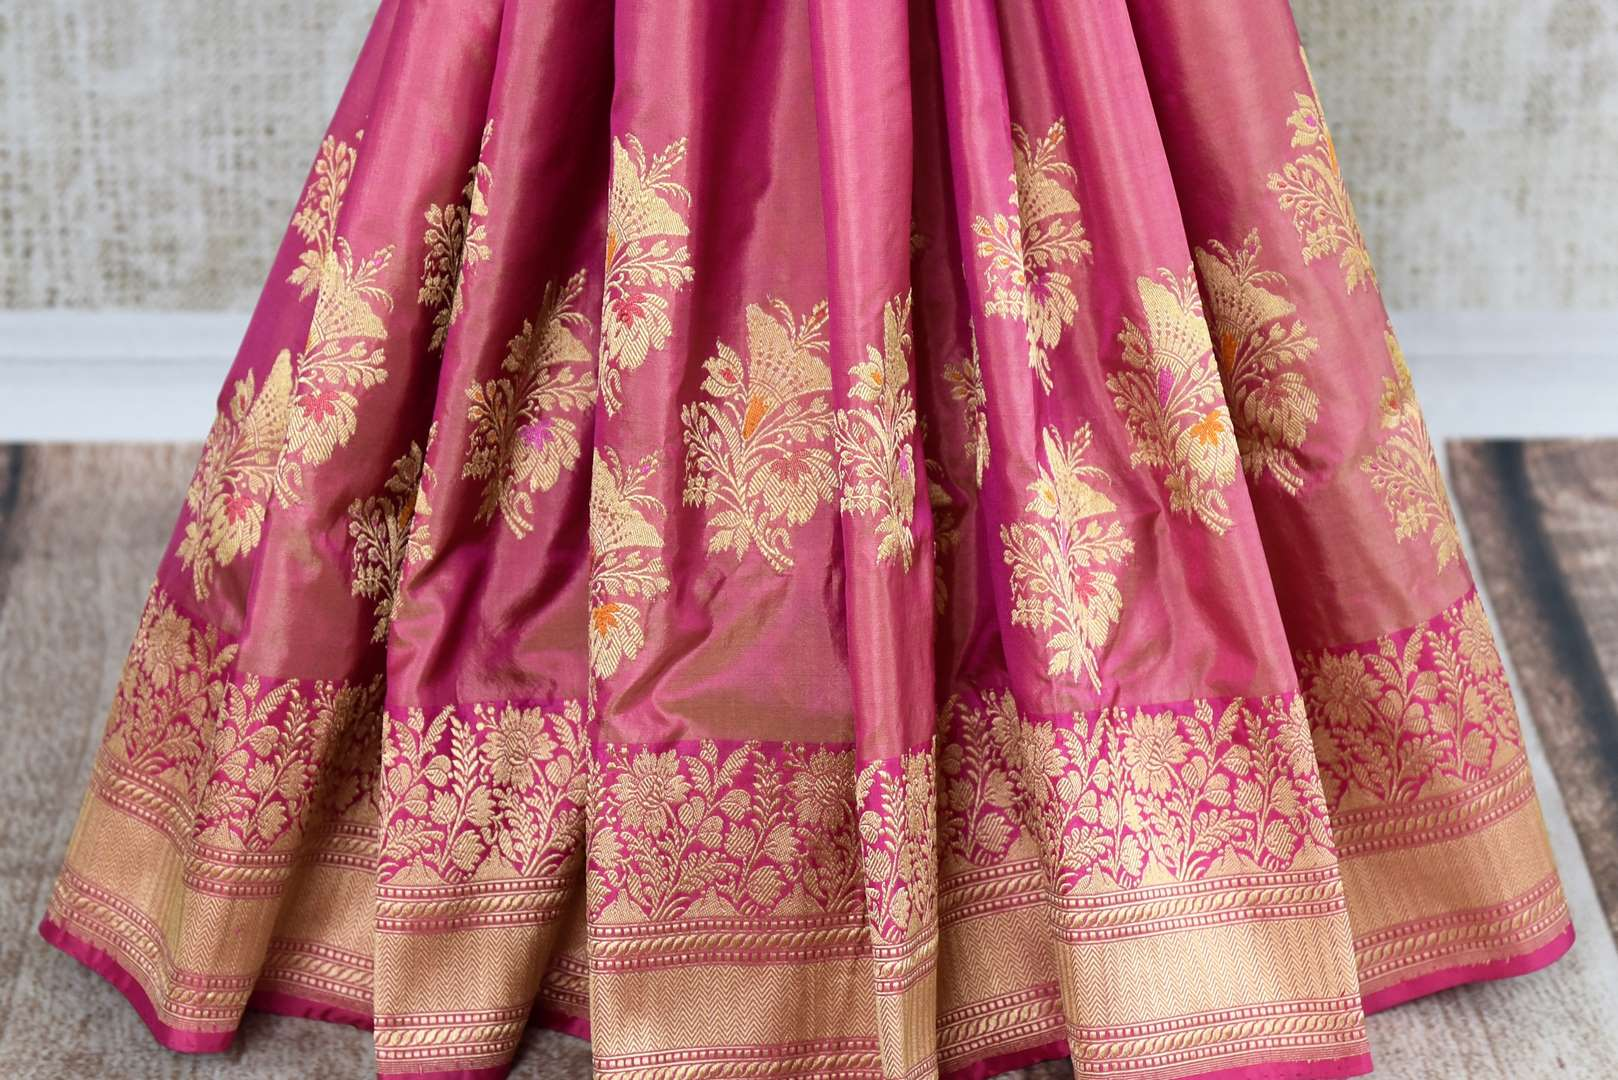 Buy online traditional pink Banarasi silk sari with floral zari buta online in USA. The saree is a stunning drape for an ethnic Indian look at weddings and special occasions. Find more such exquisite Indian silk sarees, handloom saris in USA at Pure Elegance Indian fashion store. Shop now.-pleats